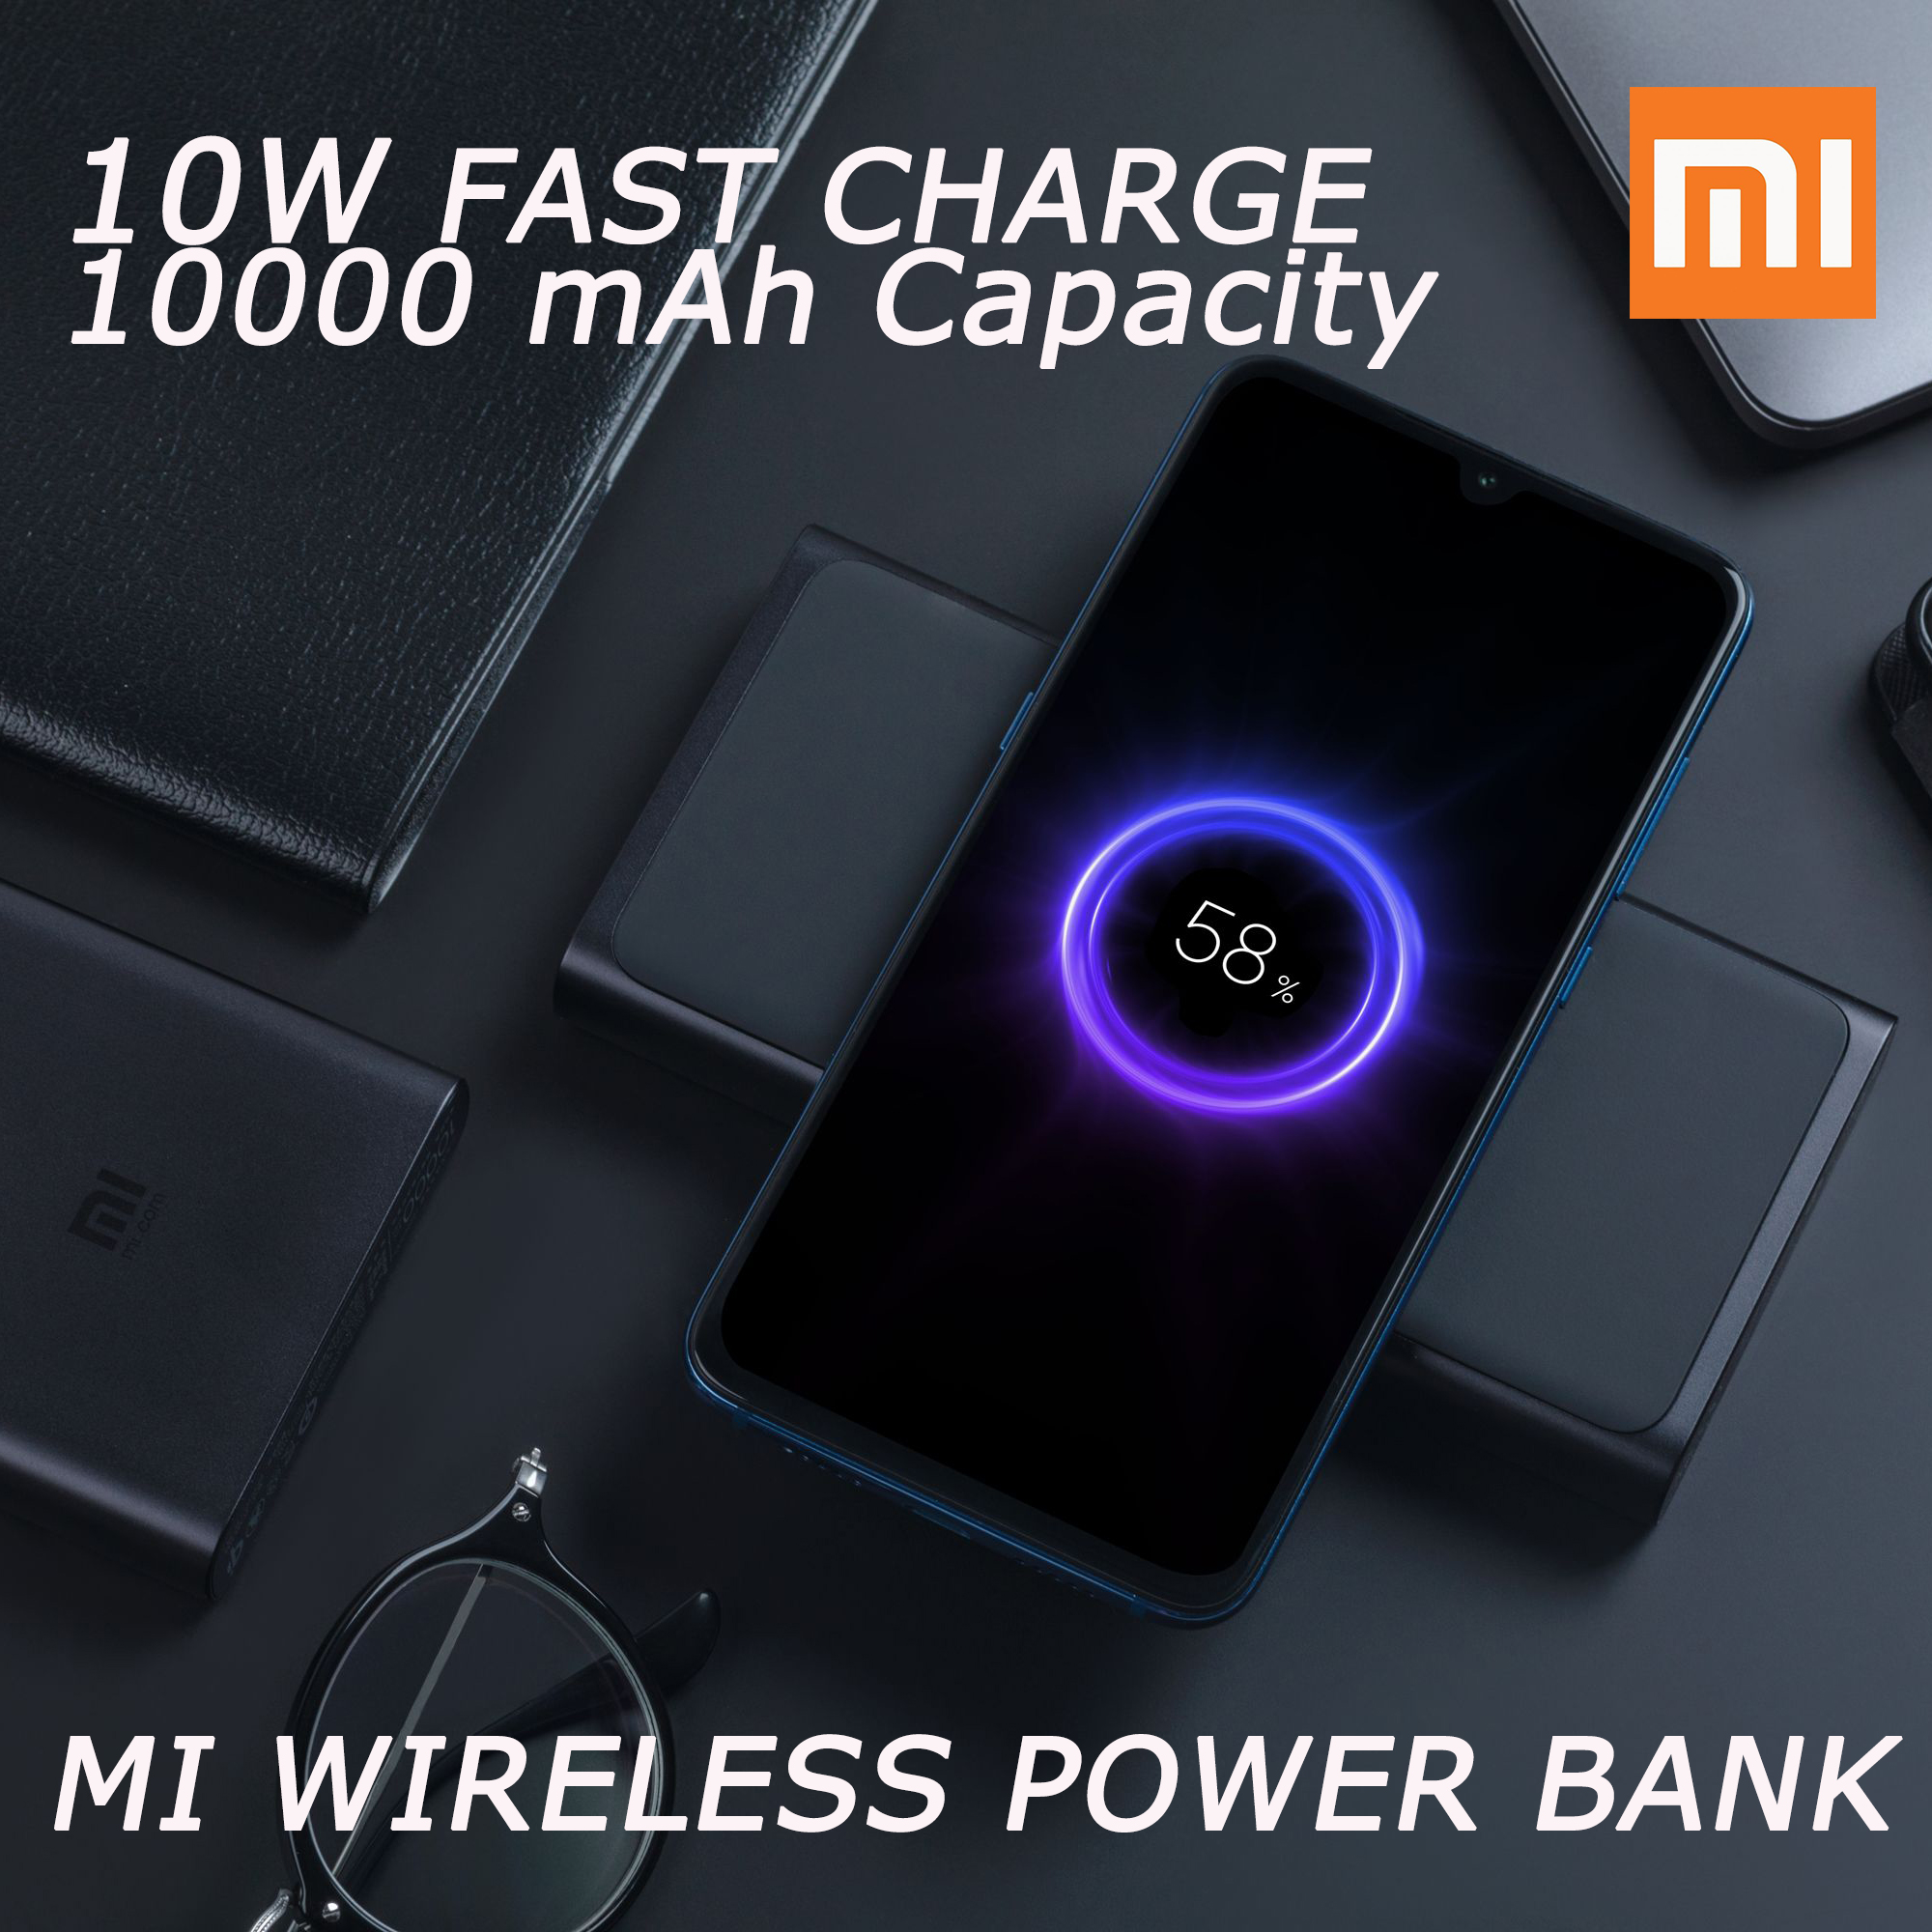 On Stock 2019 New Xiaomi Wireless Power Bank 10.000mAh 10W/18W Portable FOR iPhone Samsung Foreign objects ProtectionOn Stock 2019 New Xiaomi Wireless Power Bank 10.000mAh 10W/18W Portable FOR iPhone Samsung Foreign objects Protection